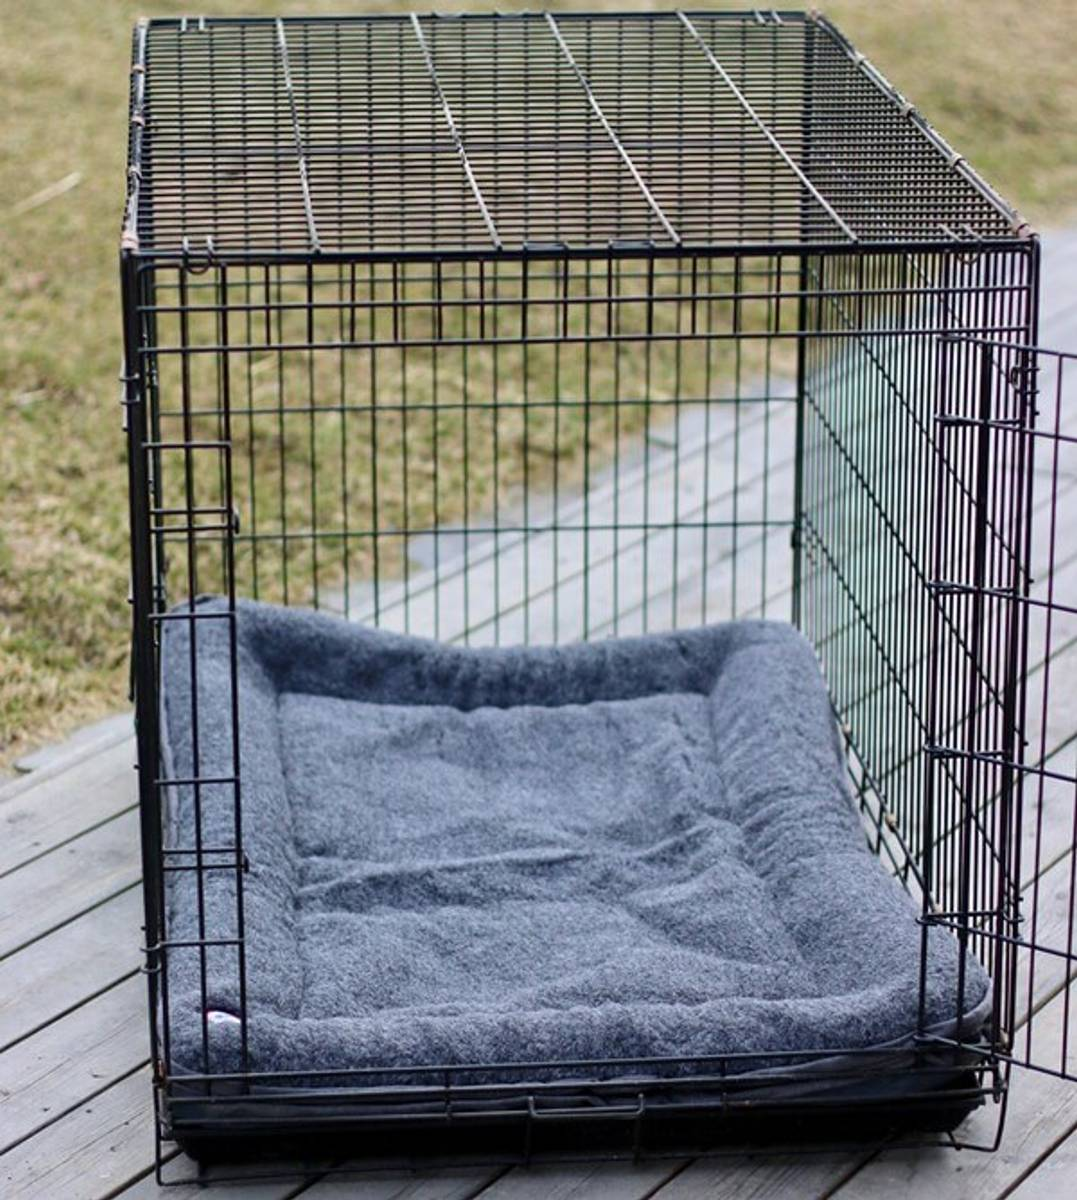 Cage mattress in wool with edge (Dogman steel cage size)